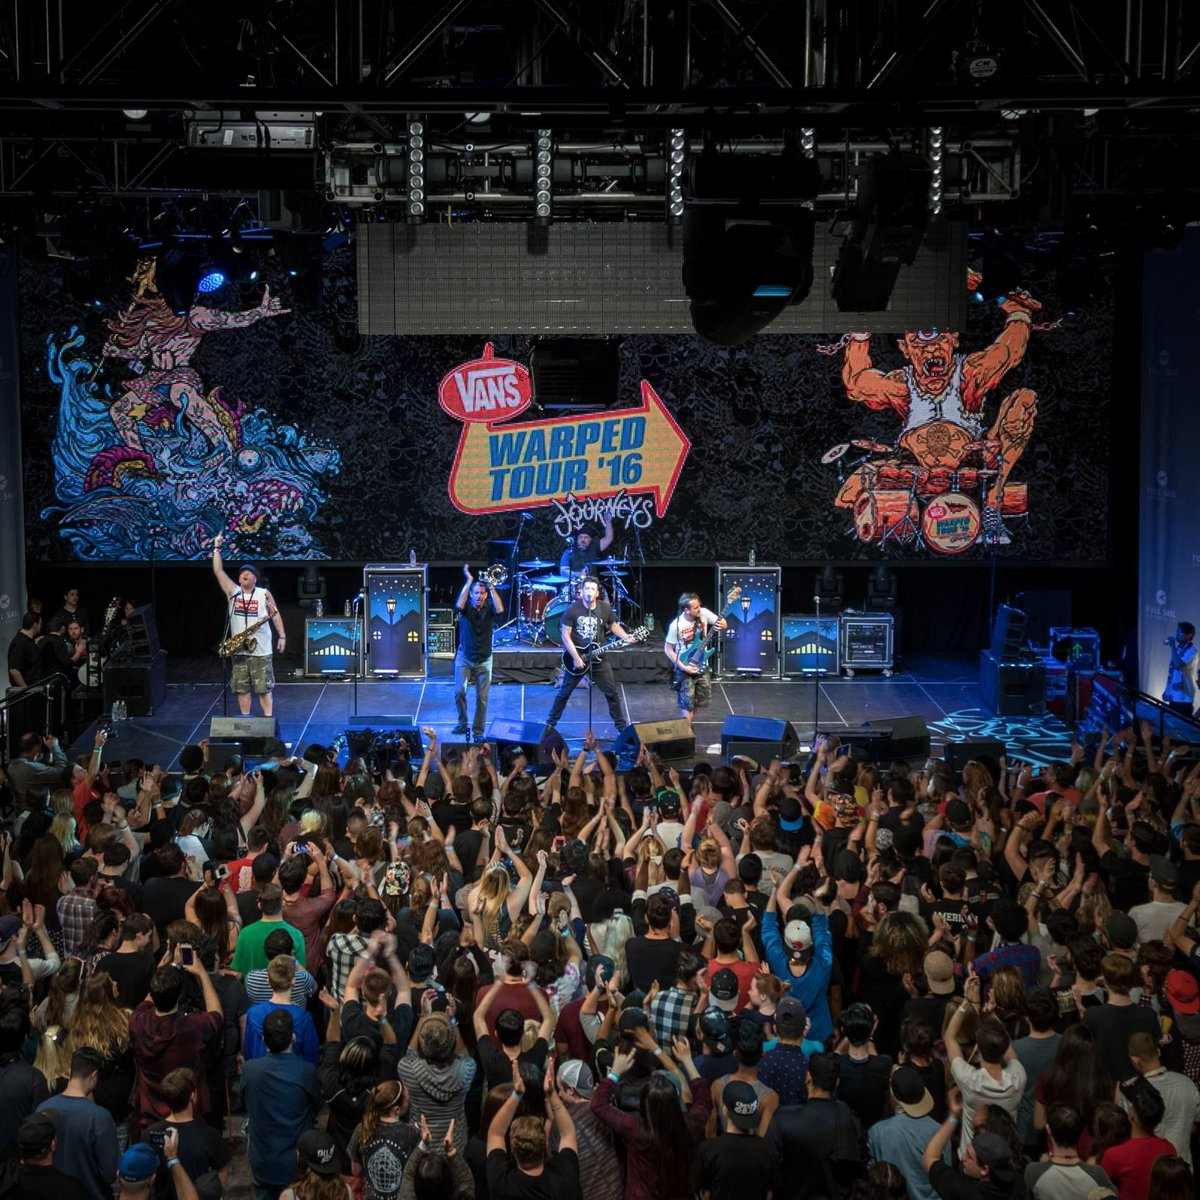 Vans Warped Tour is coming to Wilmington on July 4